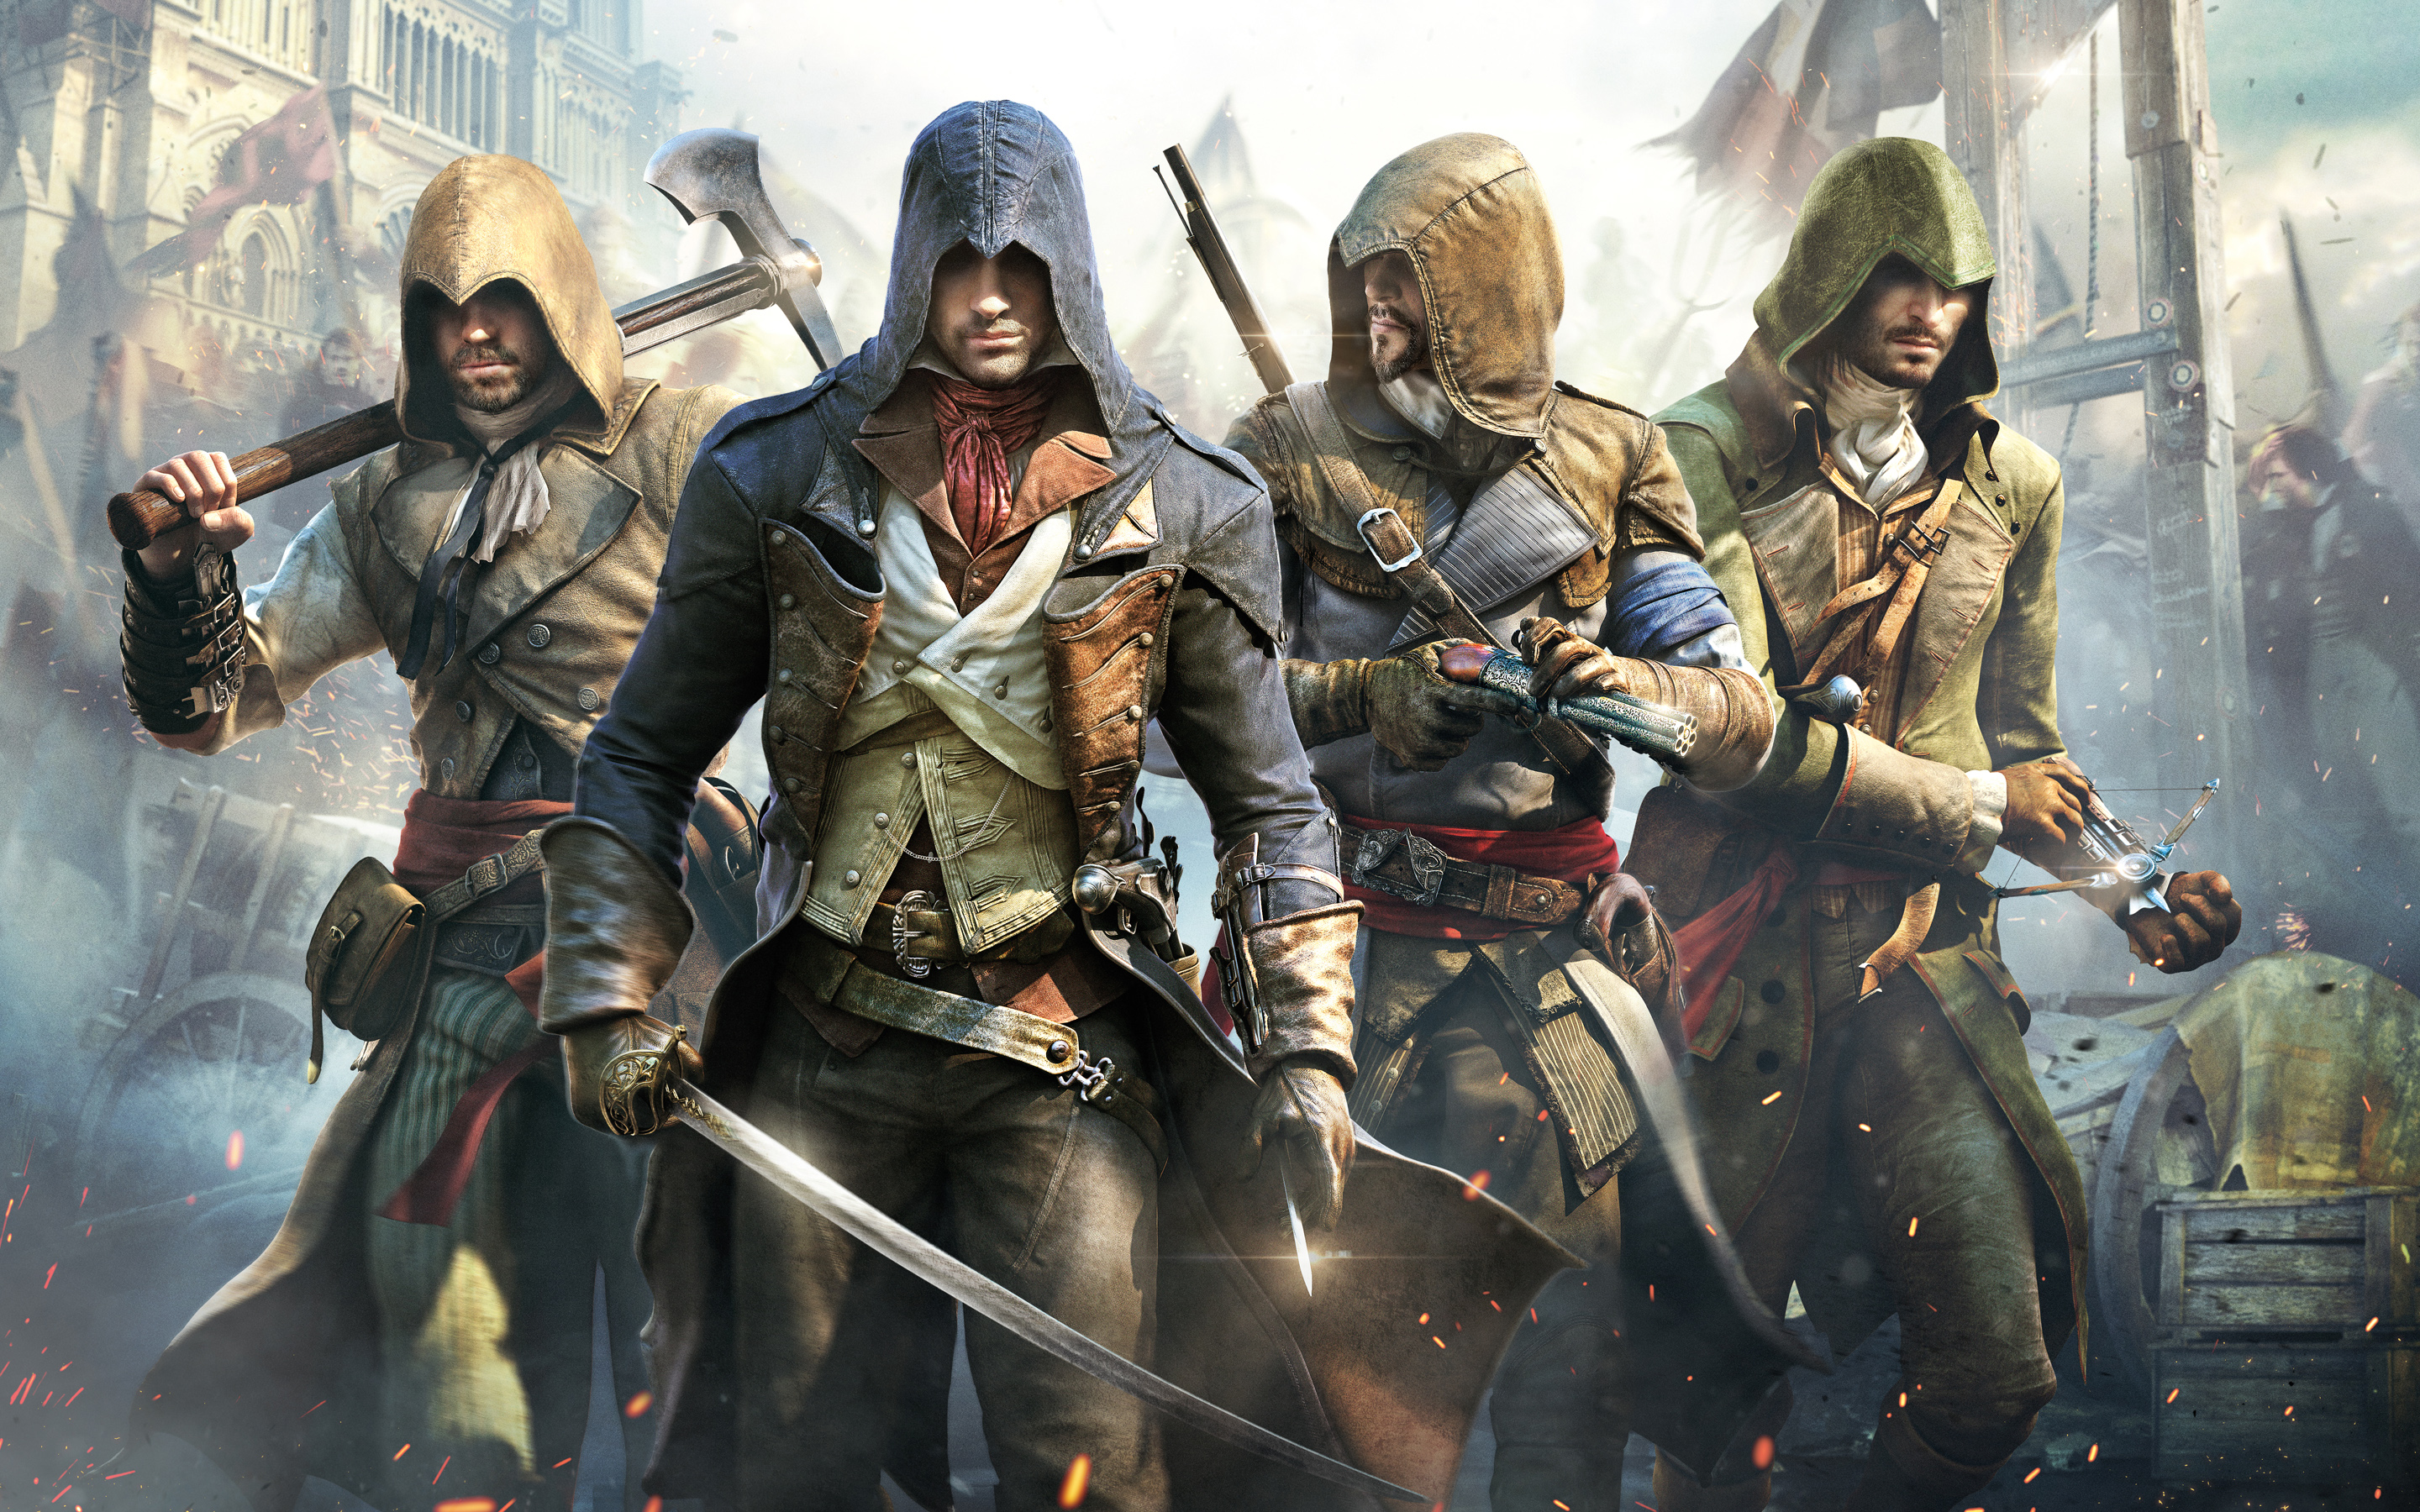 Ubisoftsteam assassins creed unity arno and gang 2014 ubisoft voltagebd Image collections